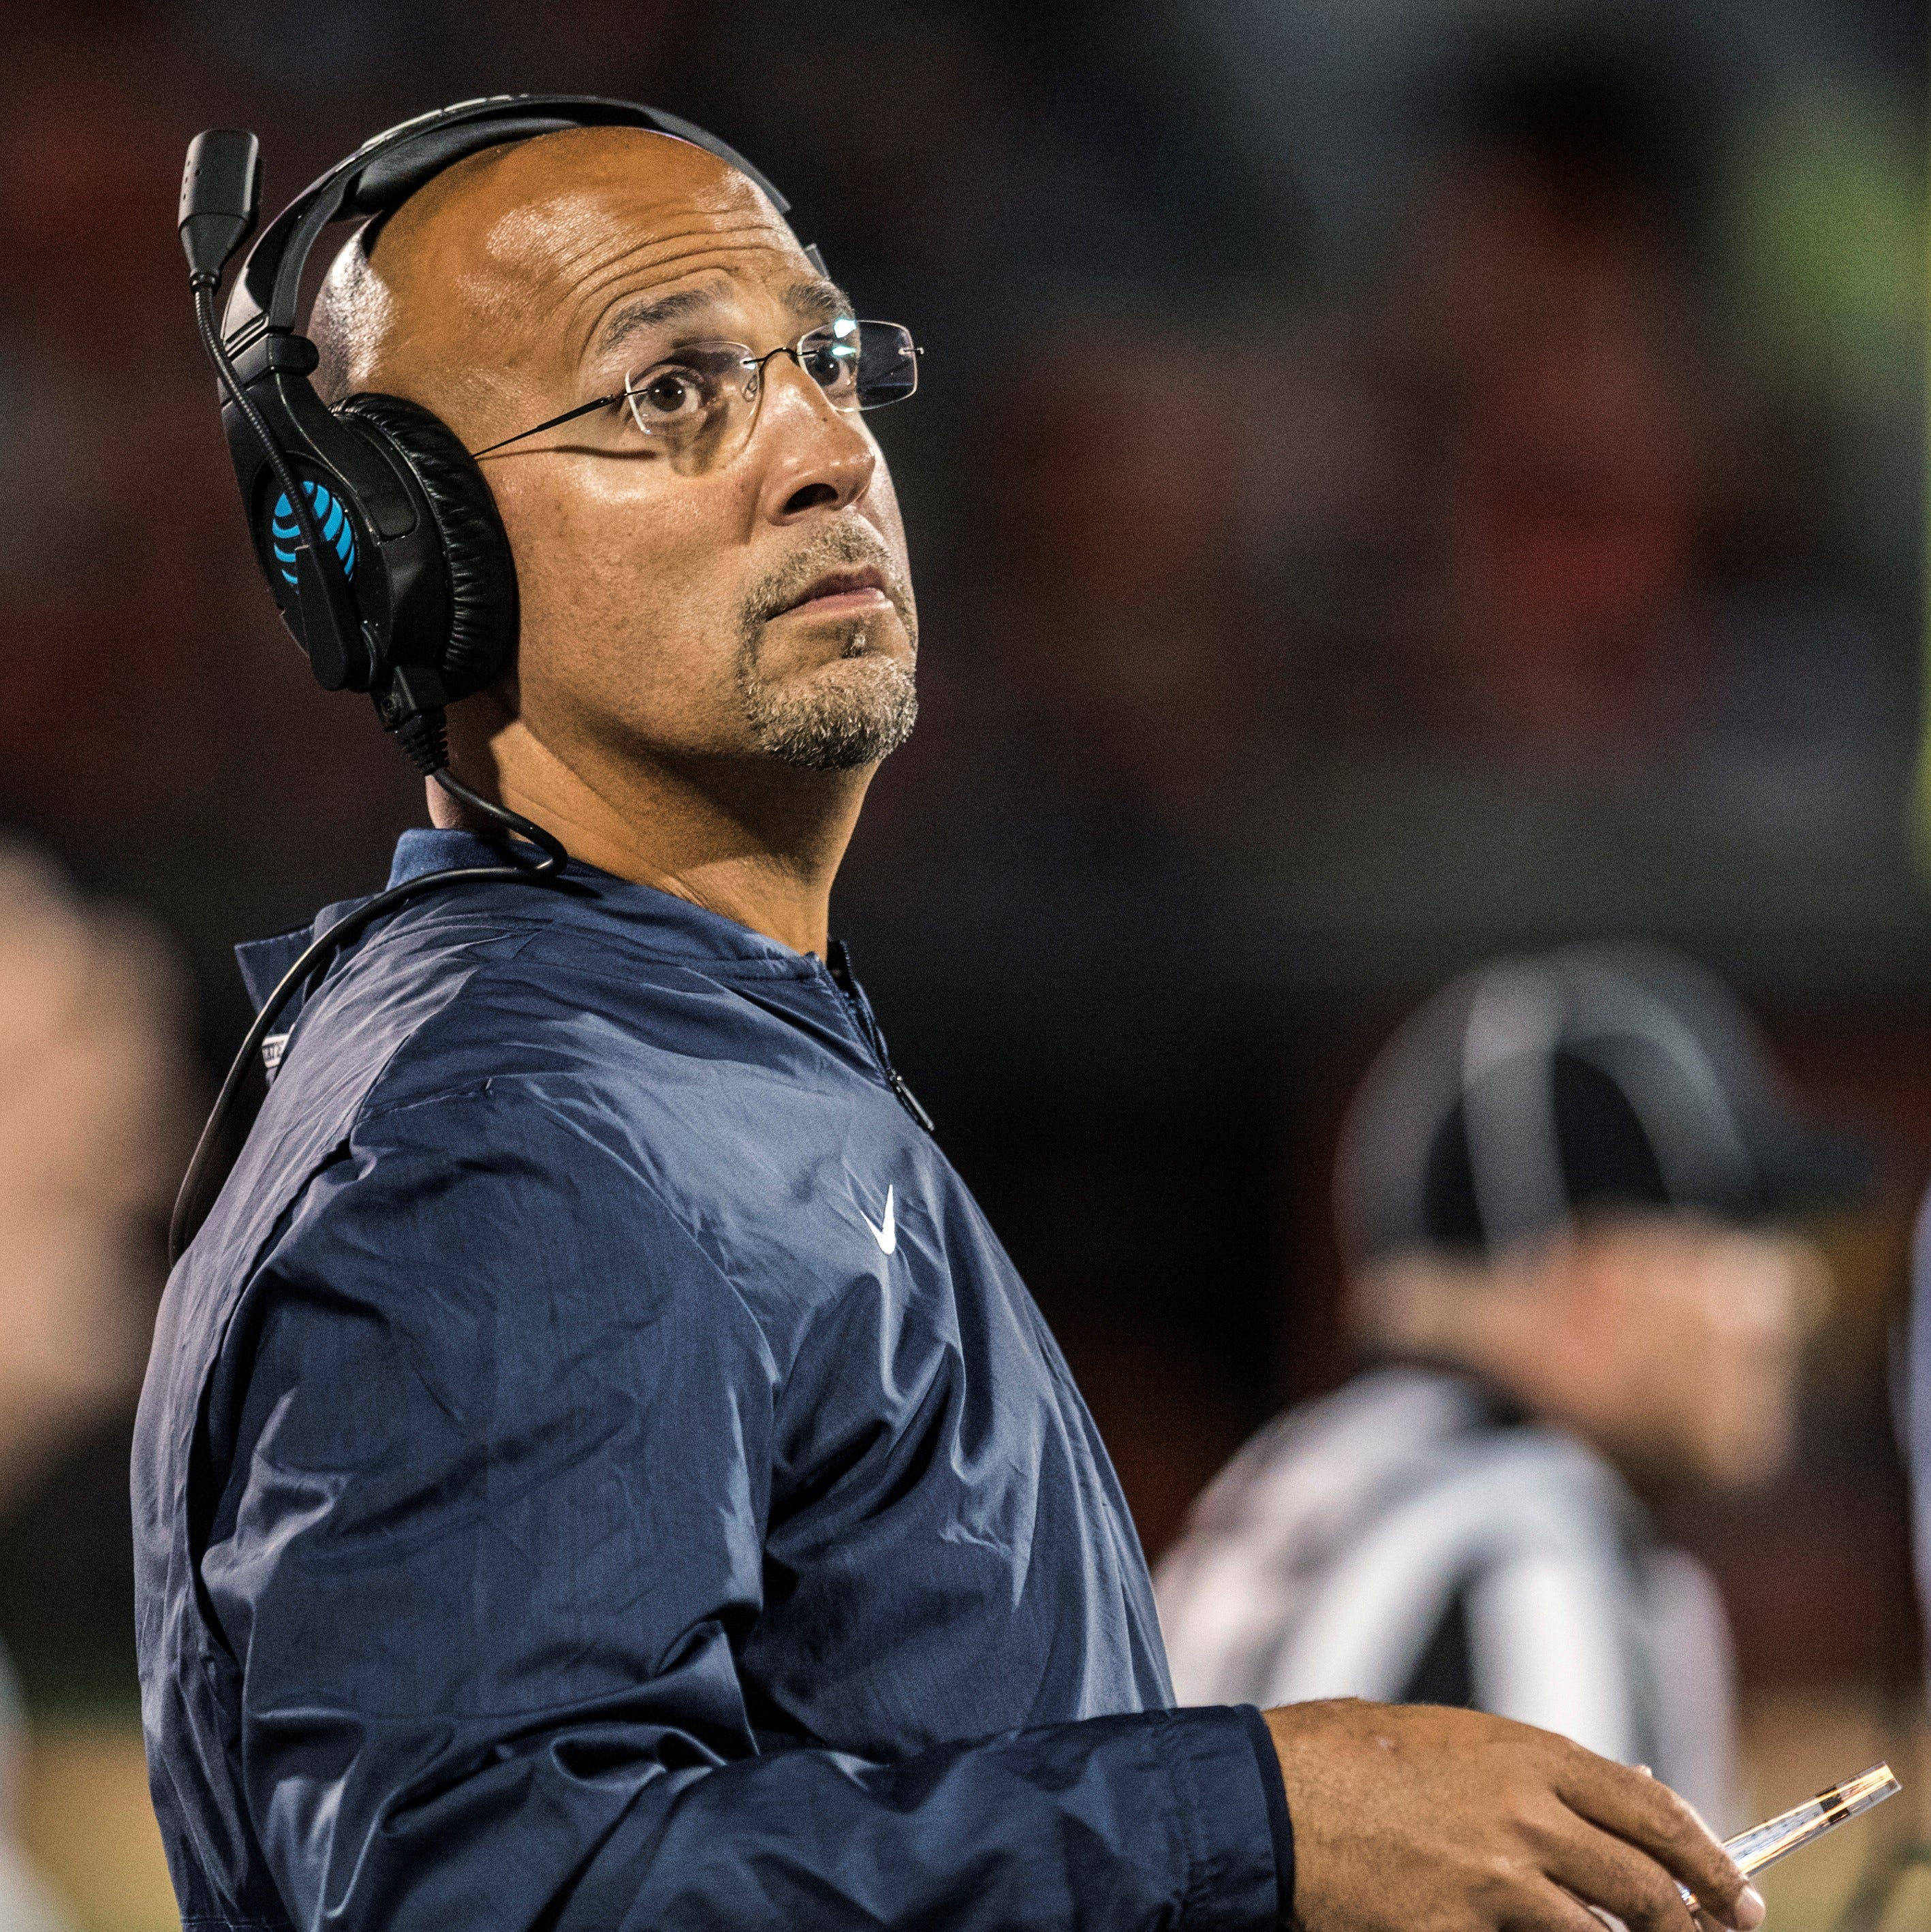 Players leave Penn State football program at alarming rate, and there may be more to come